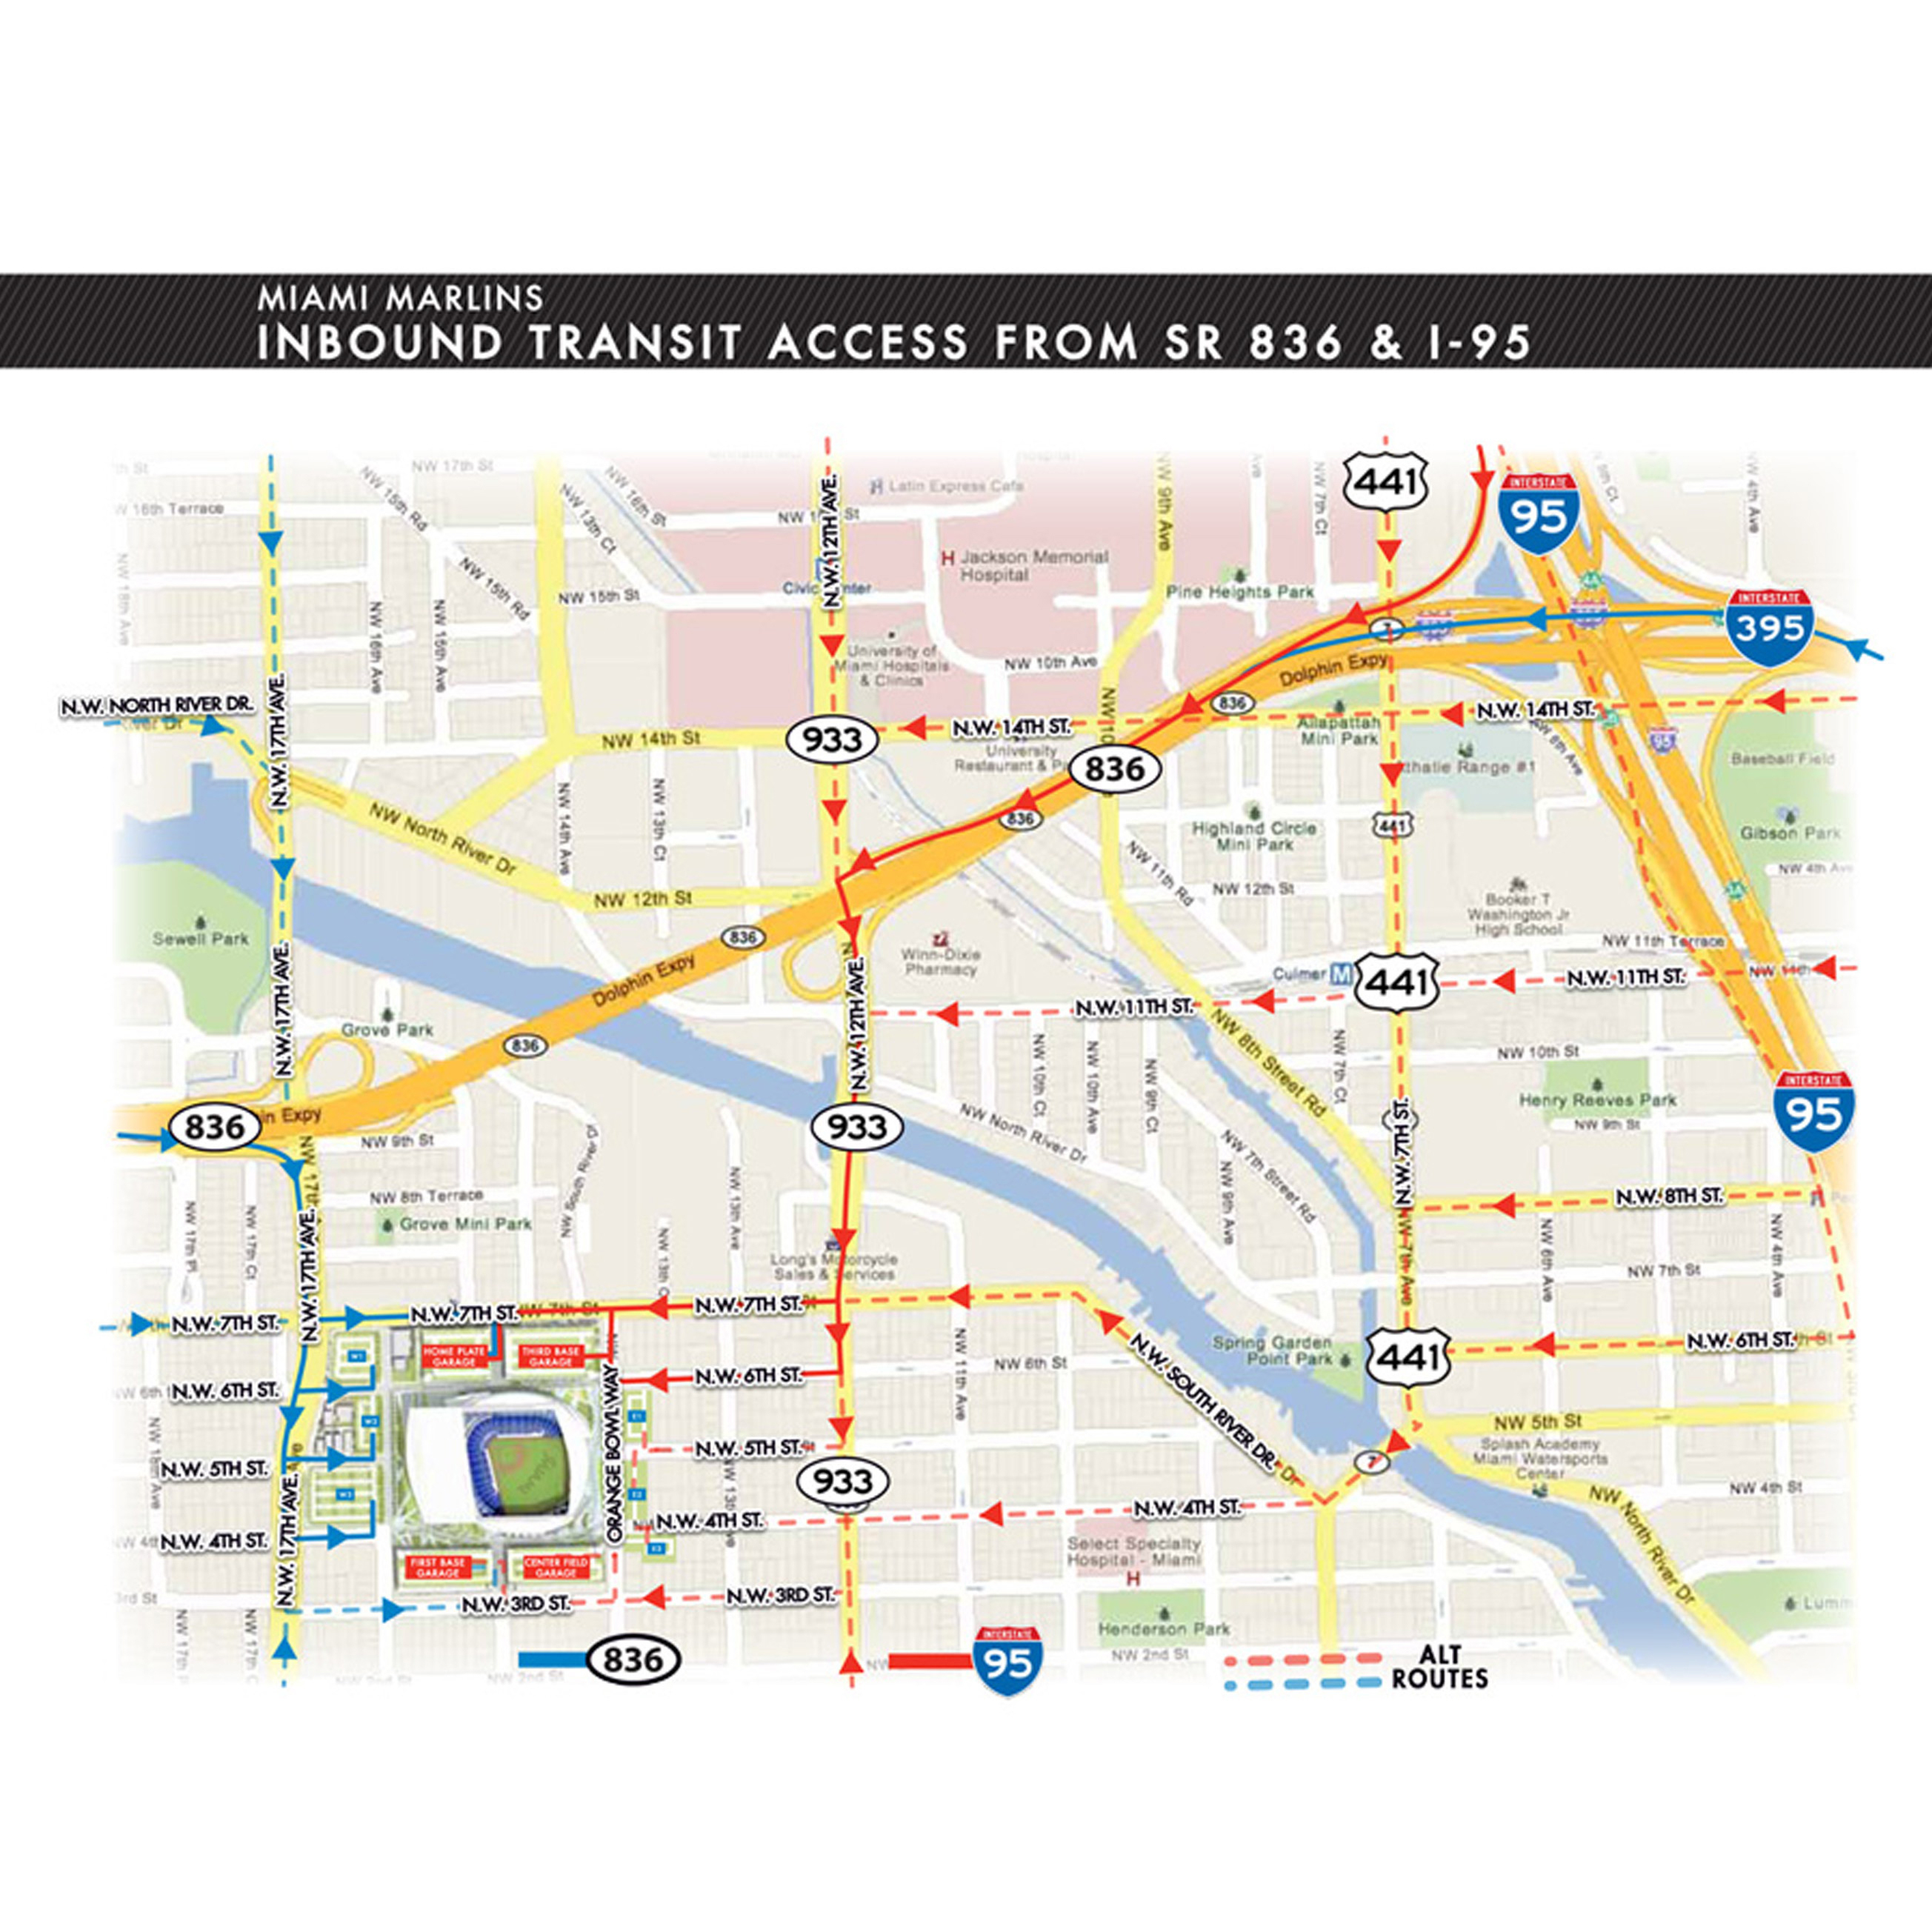 Driving Directions To Marlins Park | Miami Marlins - Map Of Spring Training Sites In Florida